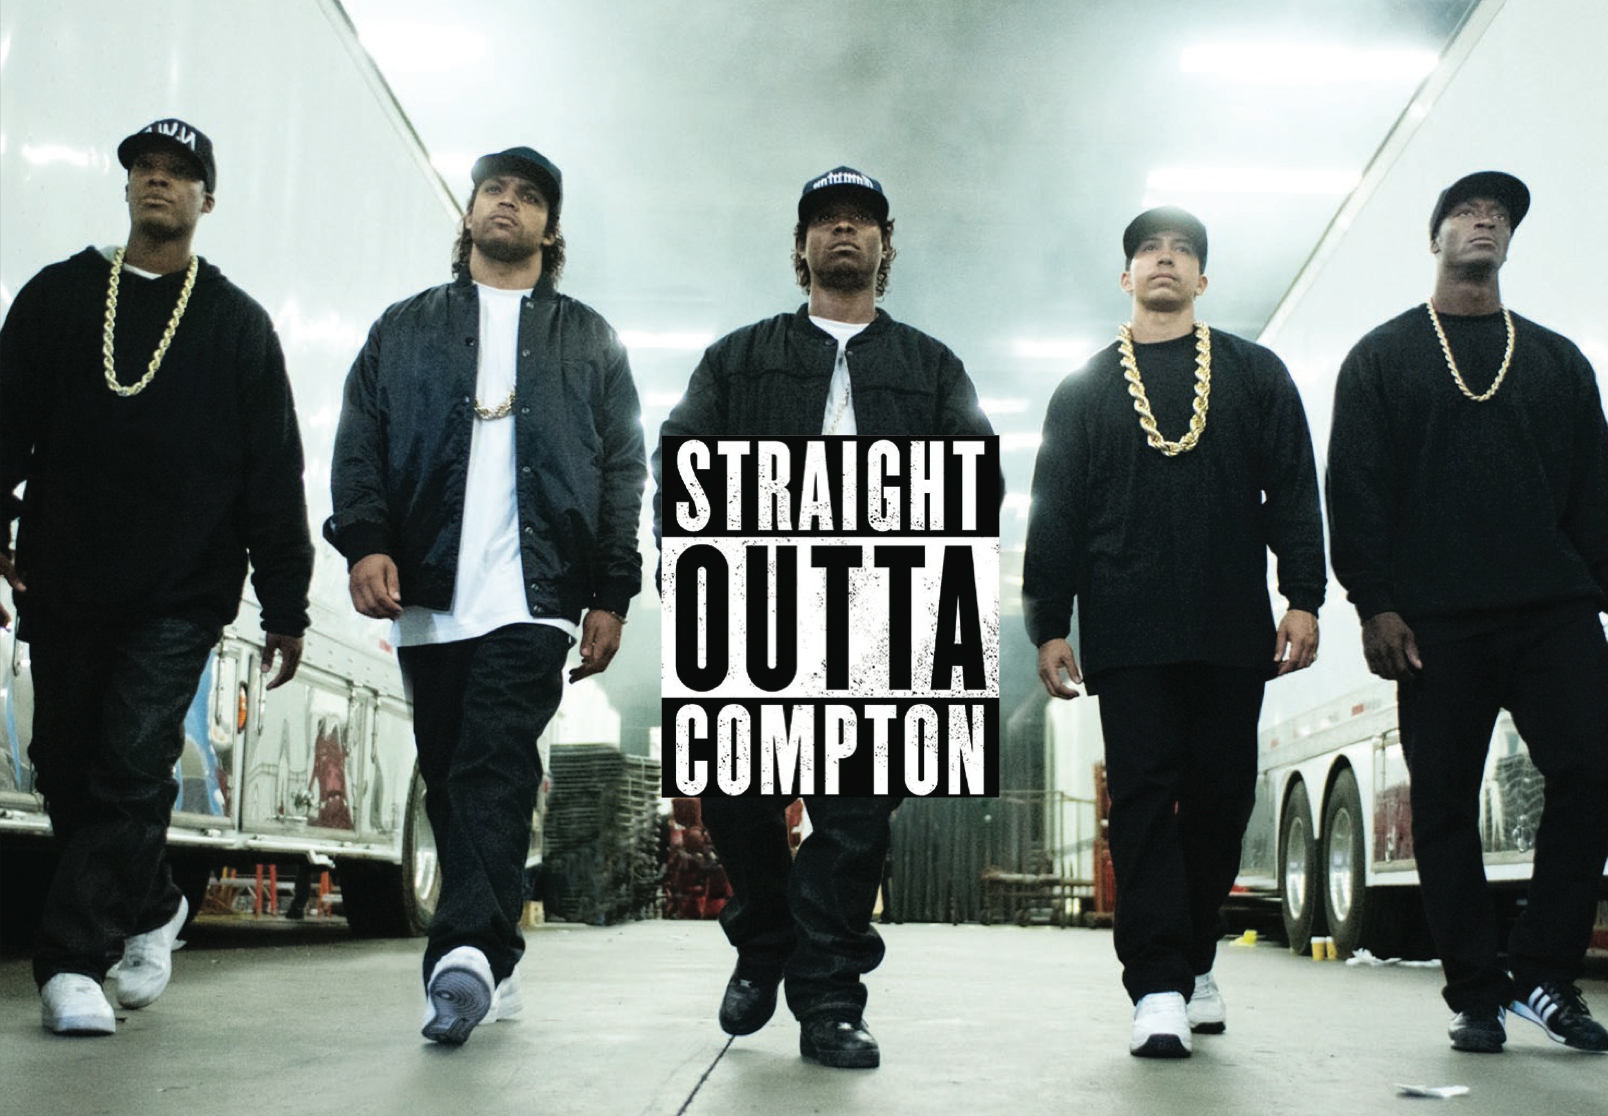 Straight outta compton box office hit rakes in 60 2m over weekend debut richmond free press - Box office hits this weekend ...